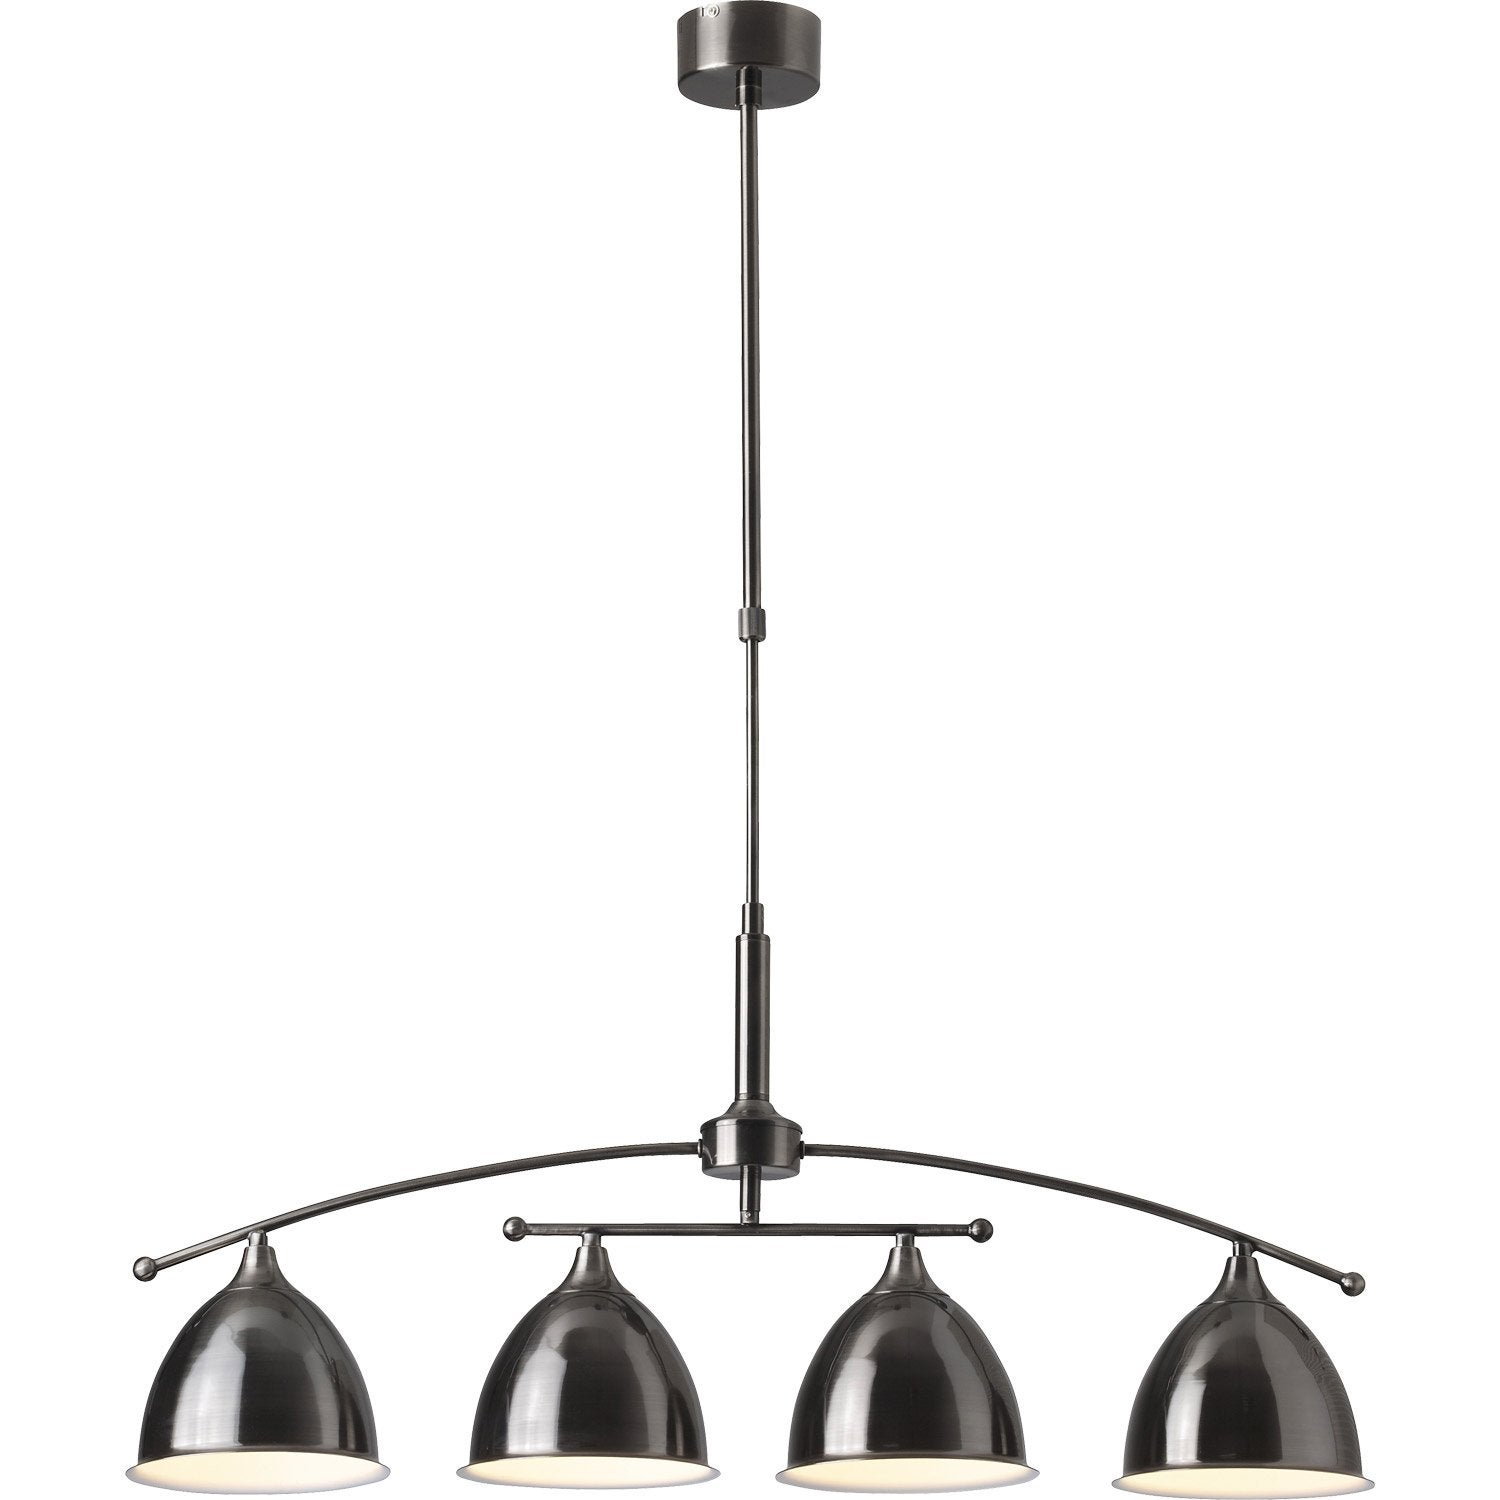 suspension e14 style industriel enzio mtal tain 4 x 40 w brilliant - Suspension Luminaire Style Industriel